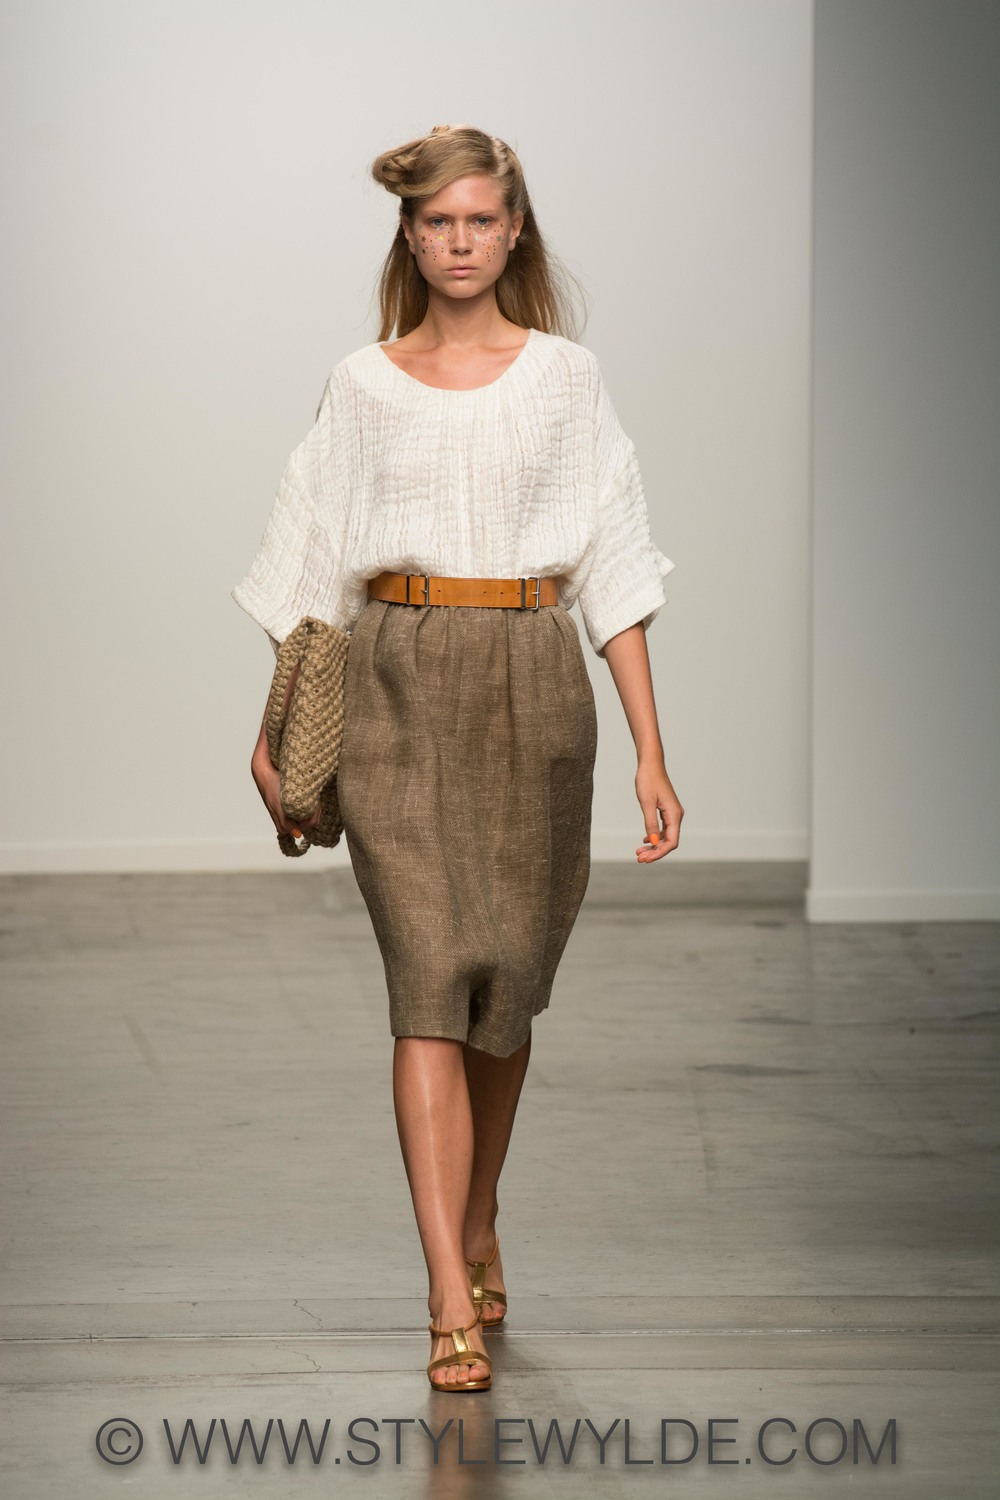 StyleWylde_adetacher_FOH_SS15_sw (8 of 37).jpg